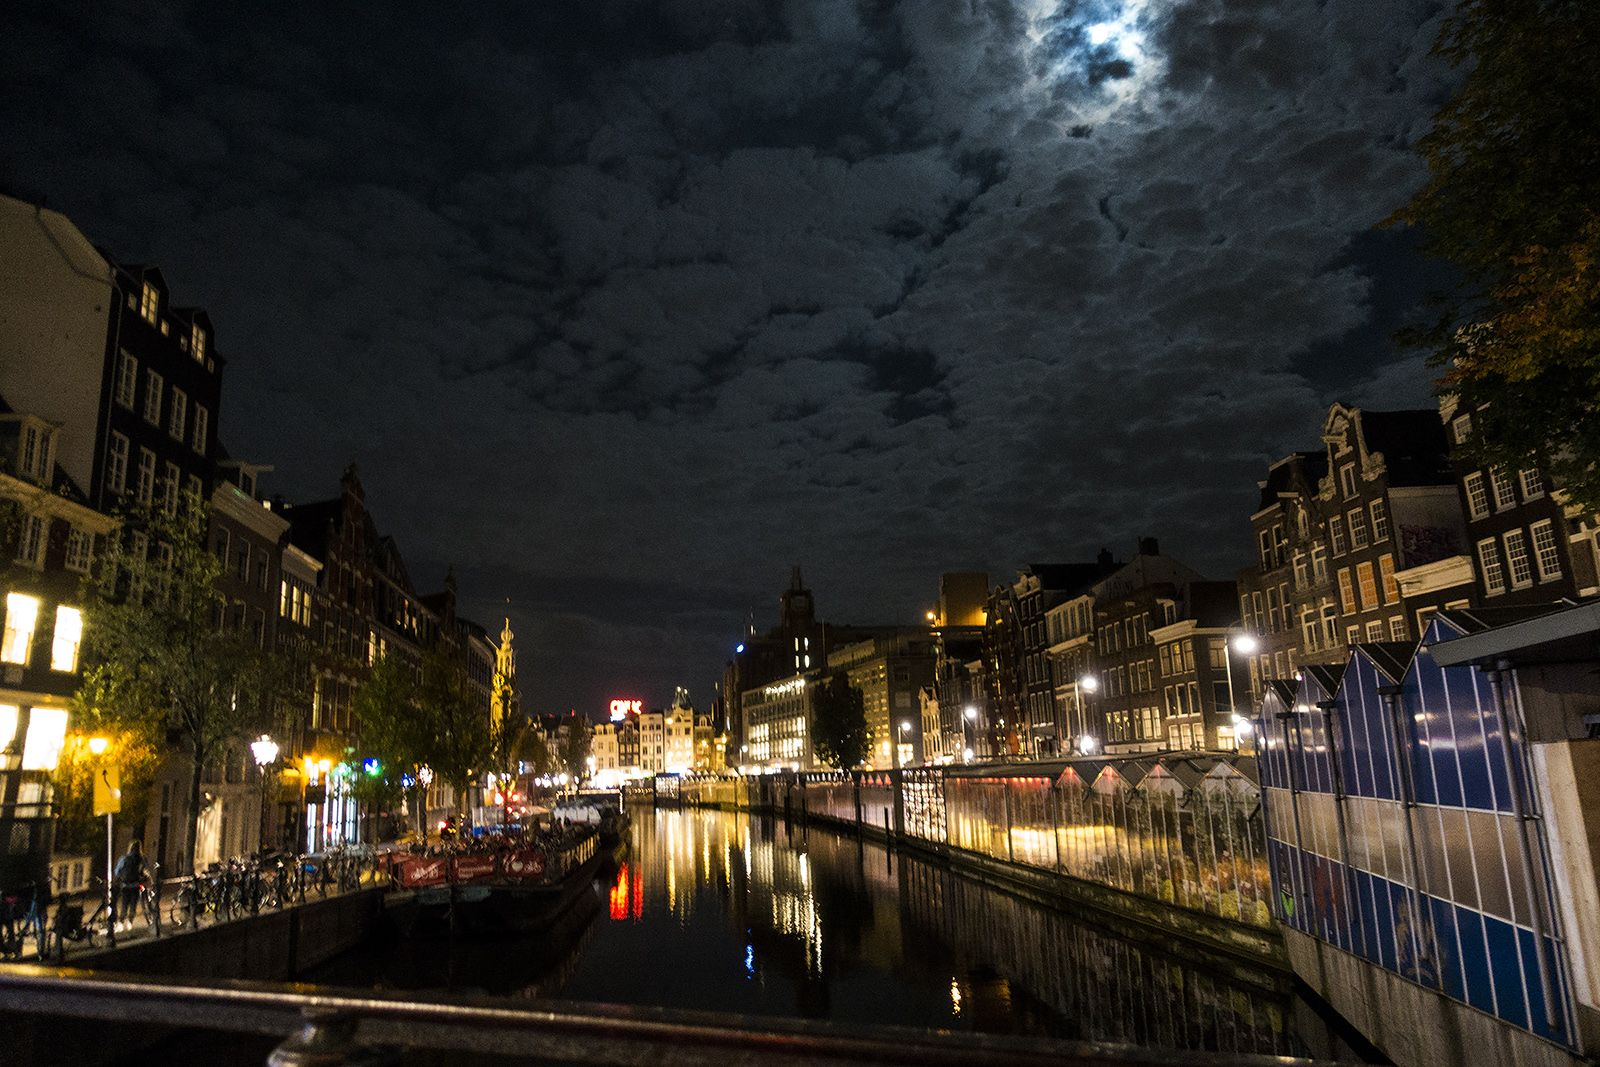 Amsterdam at night!